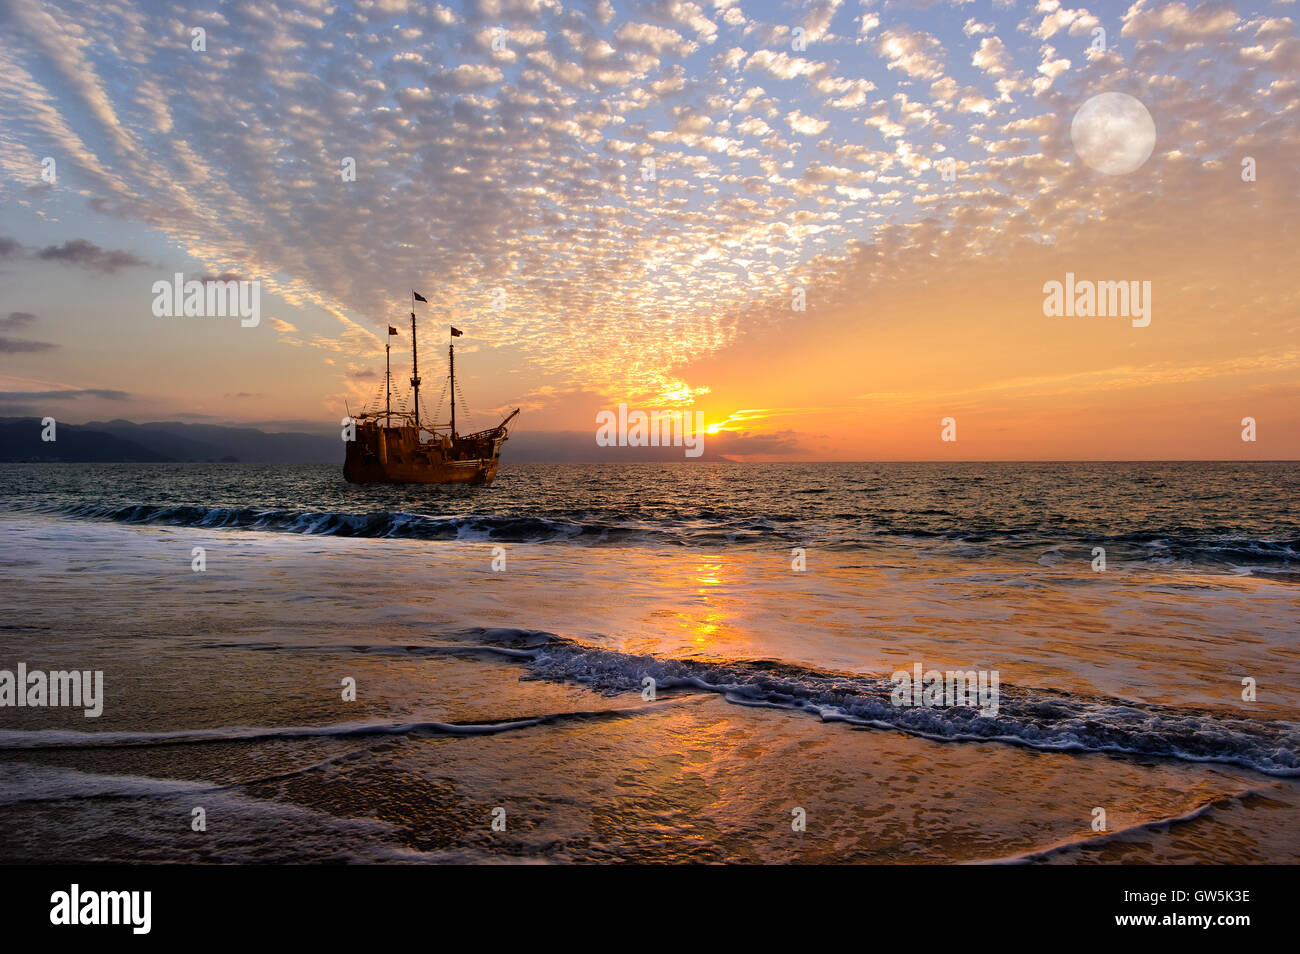 Pirate ship fantasy is an old wooden pirate ship with full flags as the sun sets on the ocean horizon in a colorful Stock Photo